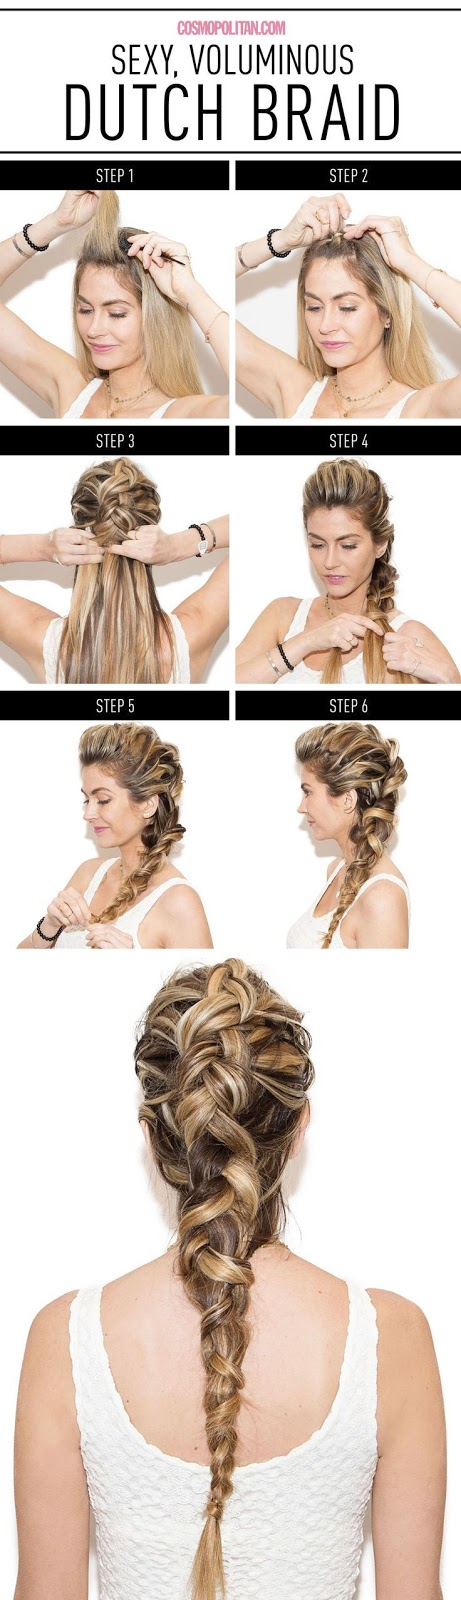 How to Make Dutch Braid in 6 Easy Steps, Khaleesi's braids on Game of Thrones